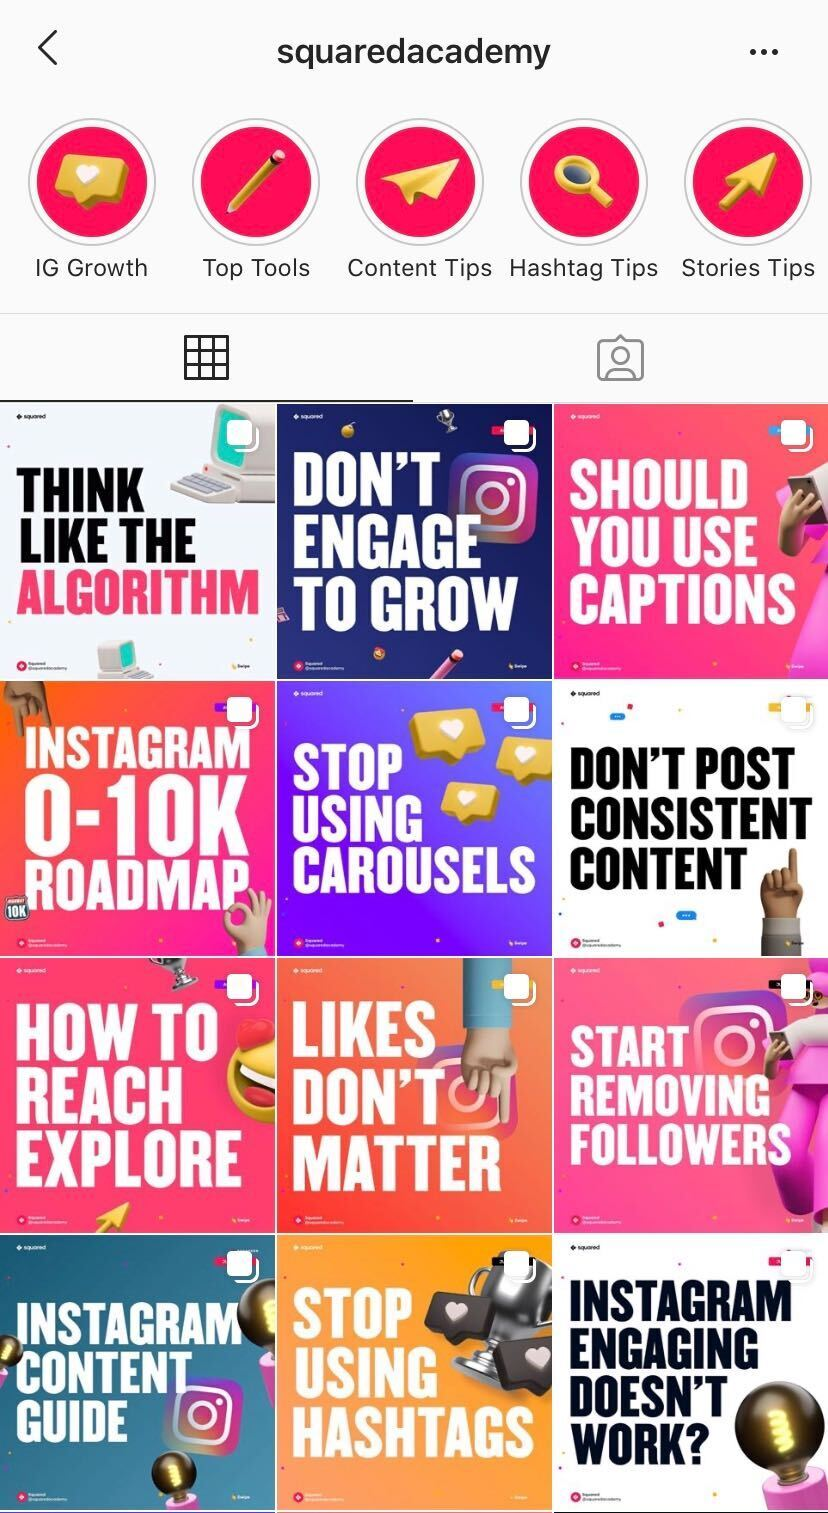 squareacademy instagram tips